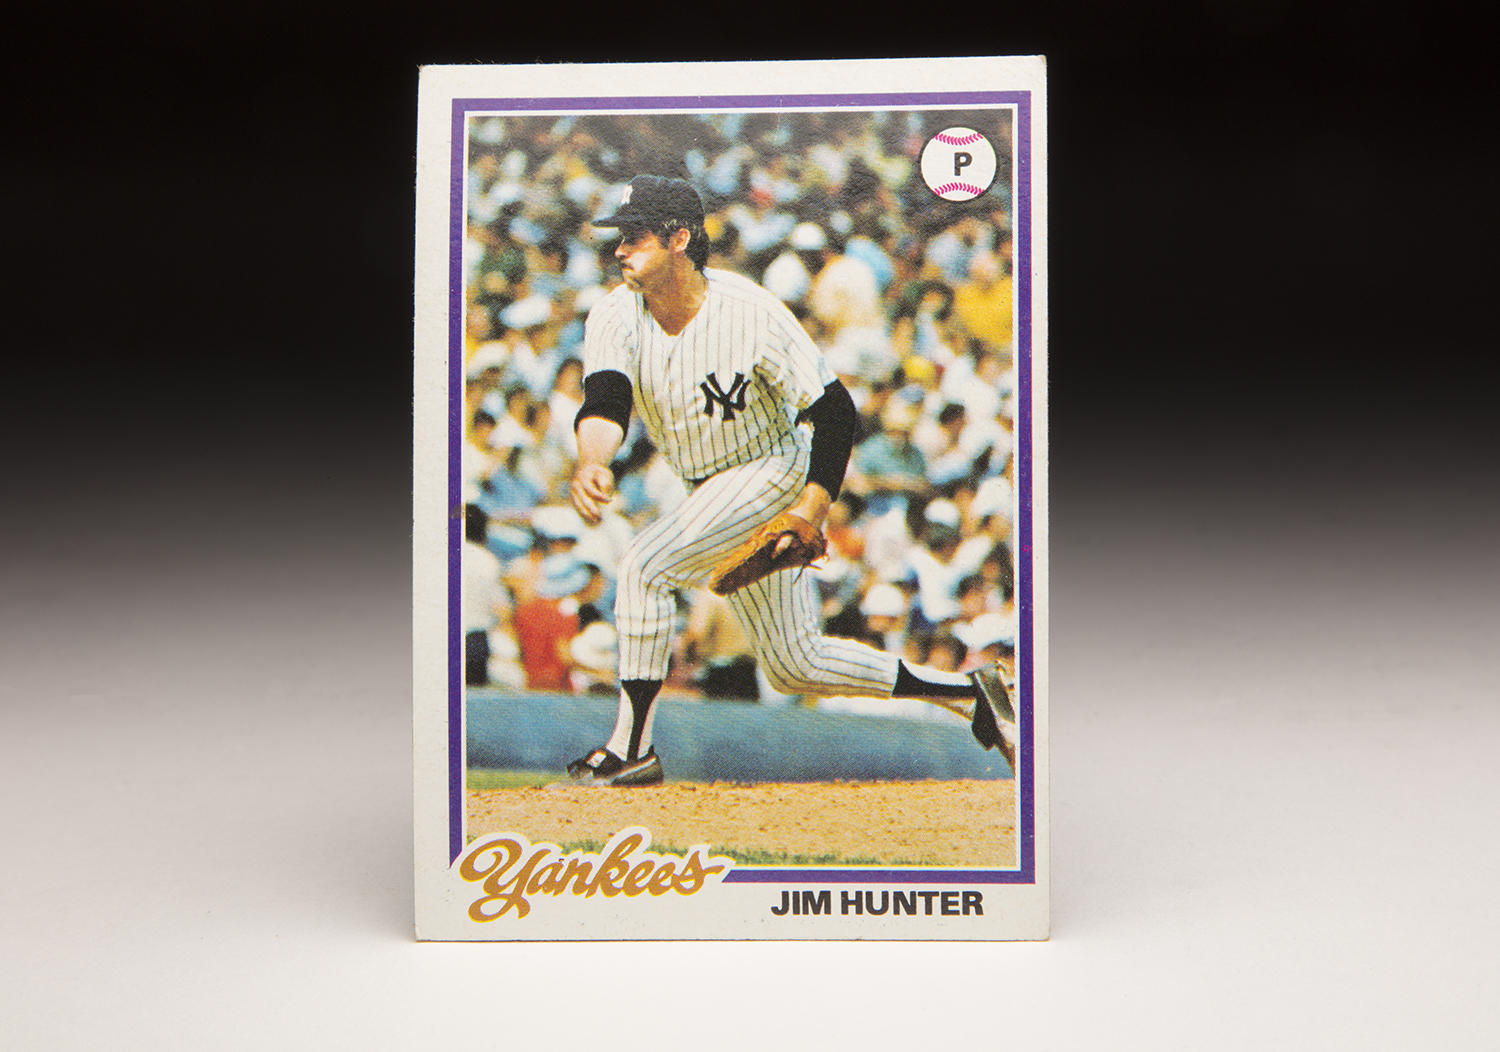 When Catfish Hunter's 1978 Topps card came out, he was in his fourth season with the New York Yankees. (Milo Stewart Jr./National Baseball Hall of Fame and Museum)